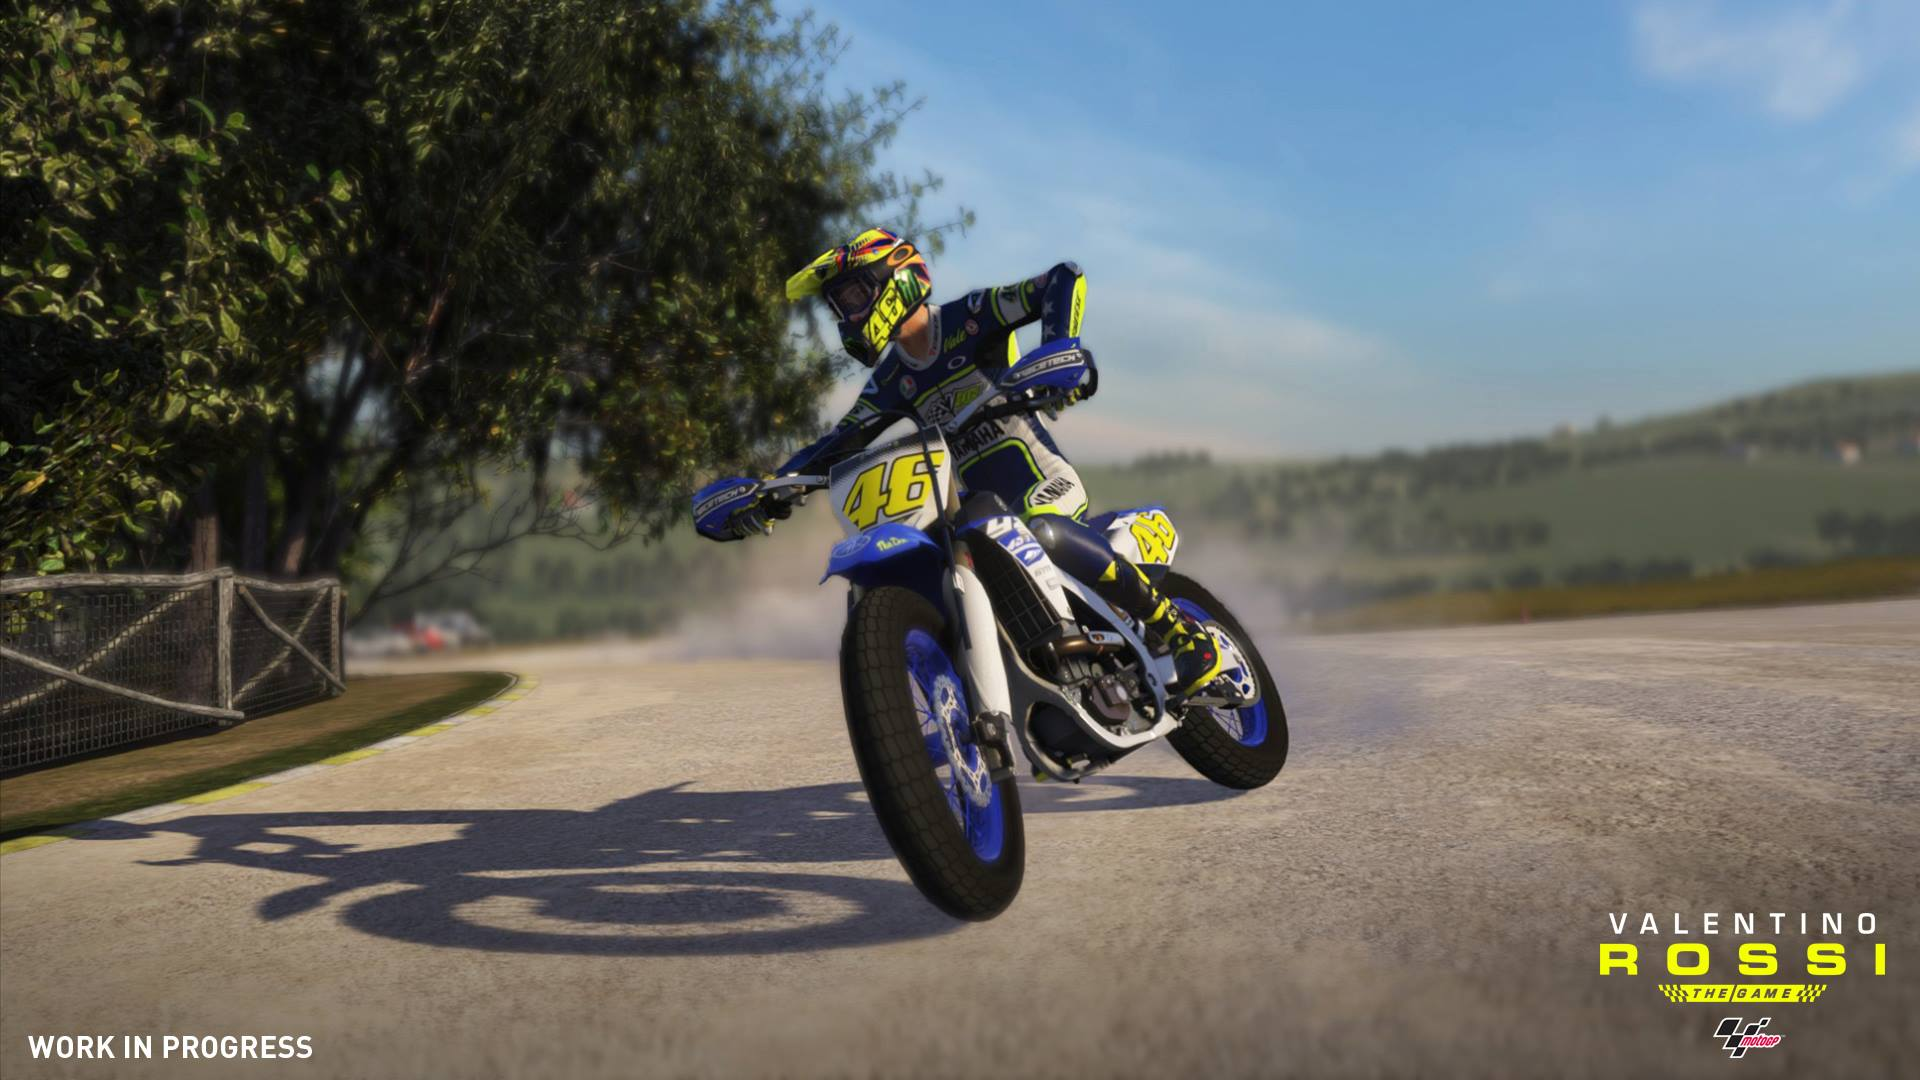 Valentino Rossi The Game's release date revealed